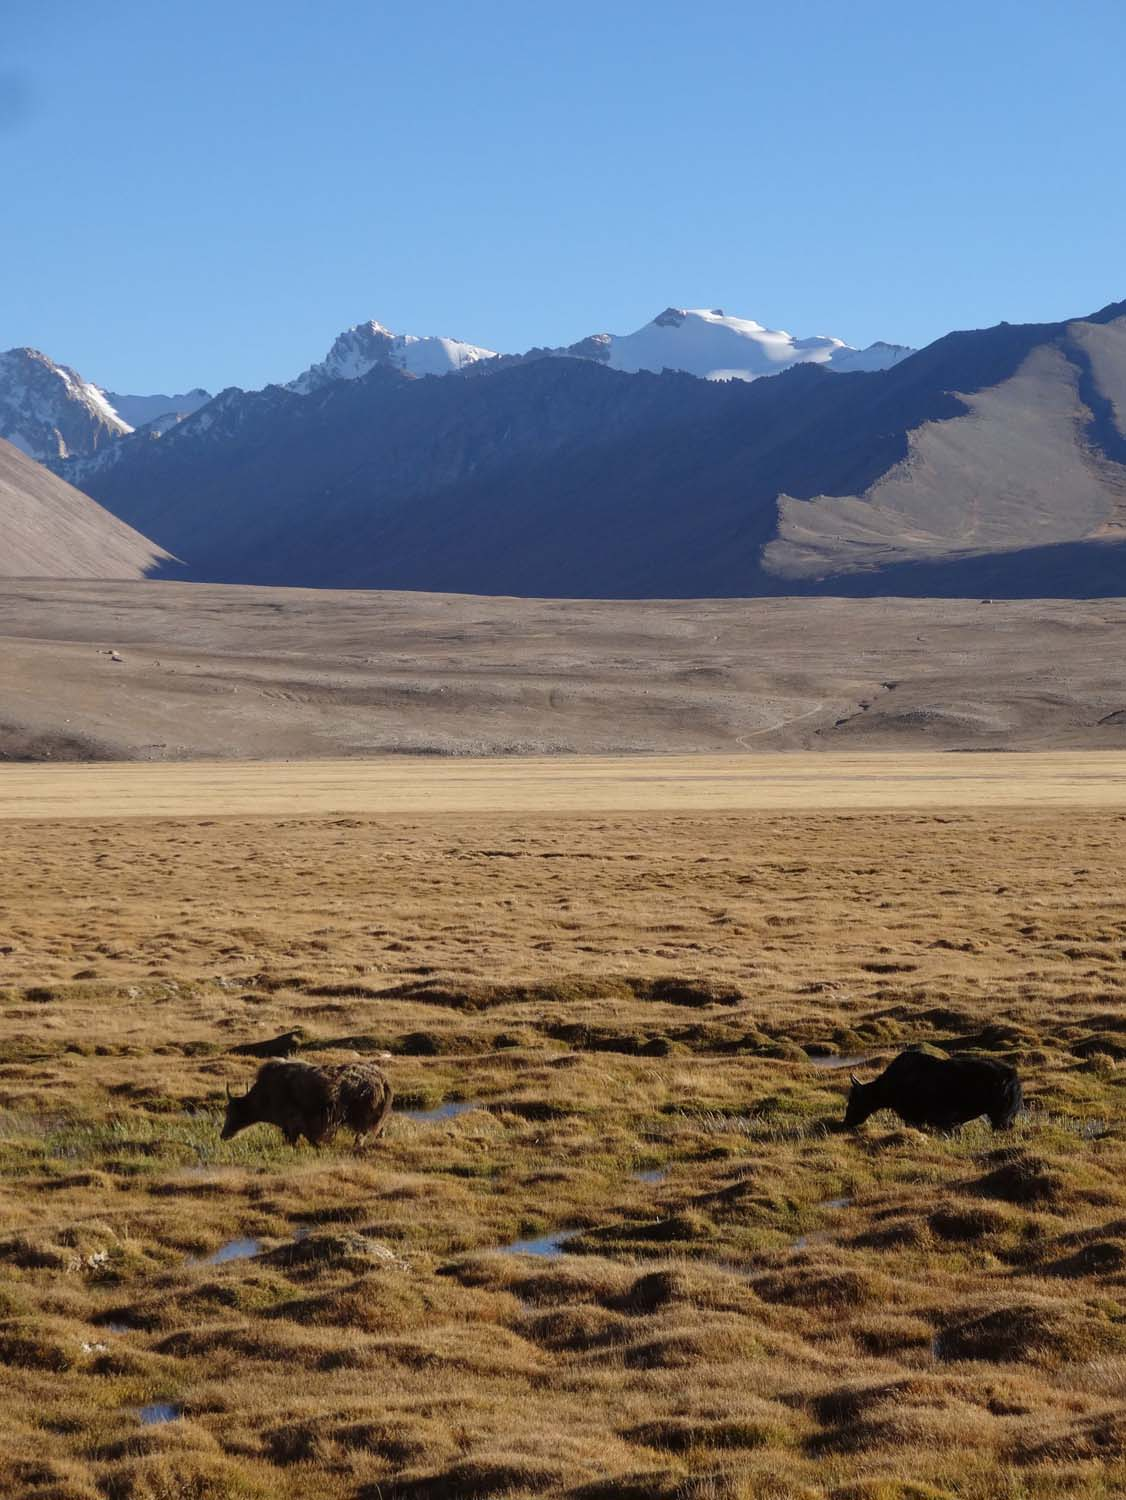 yaks on the plains of the Pamir Highway